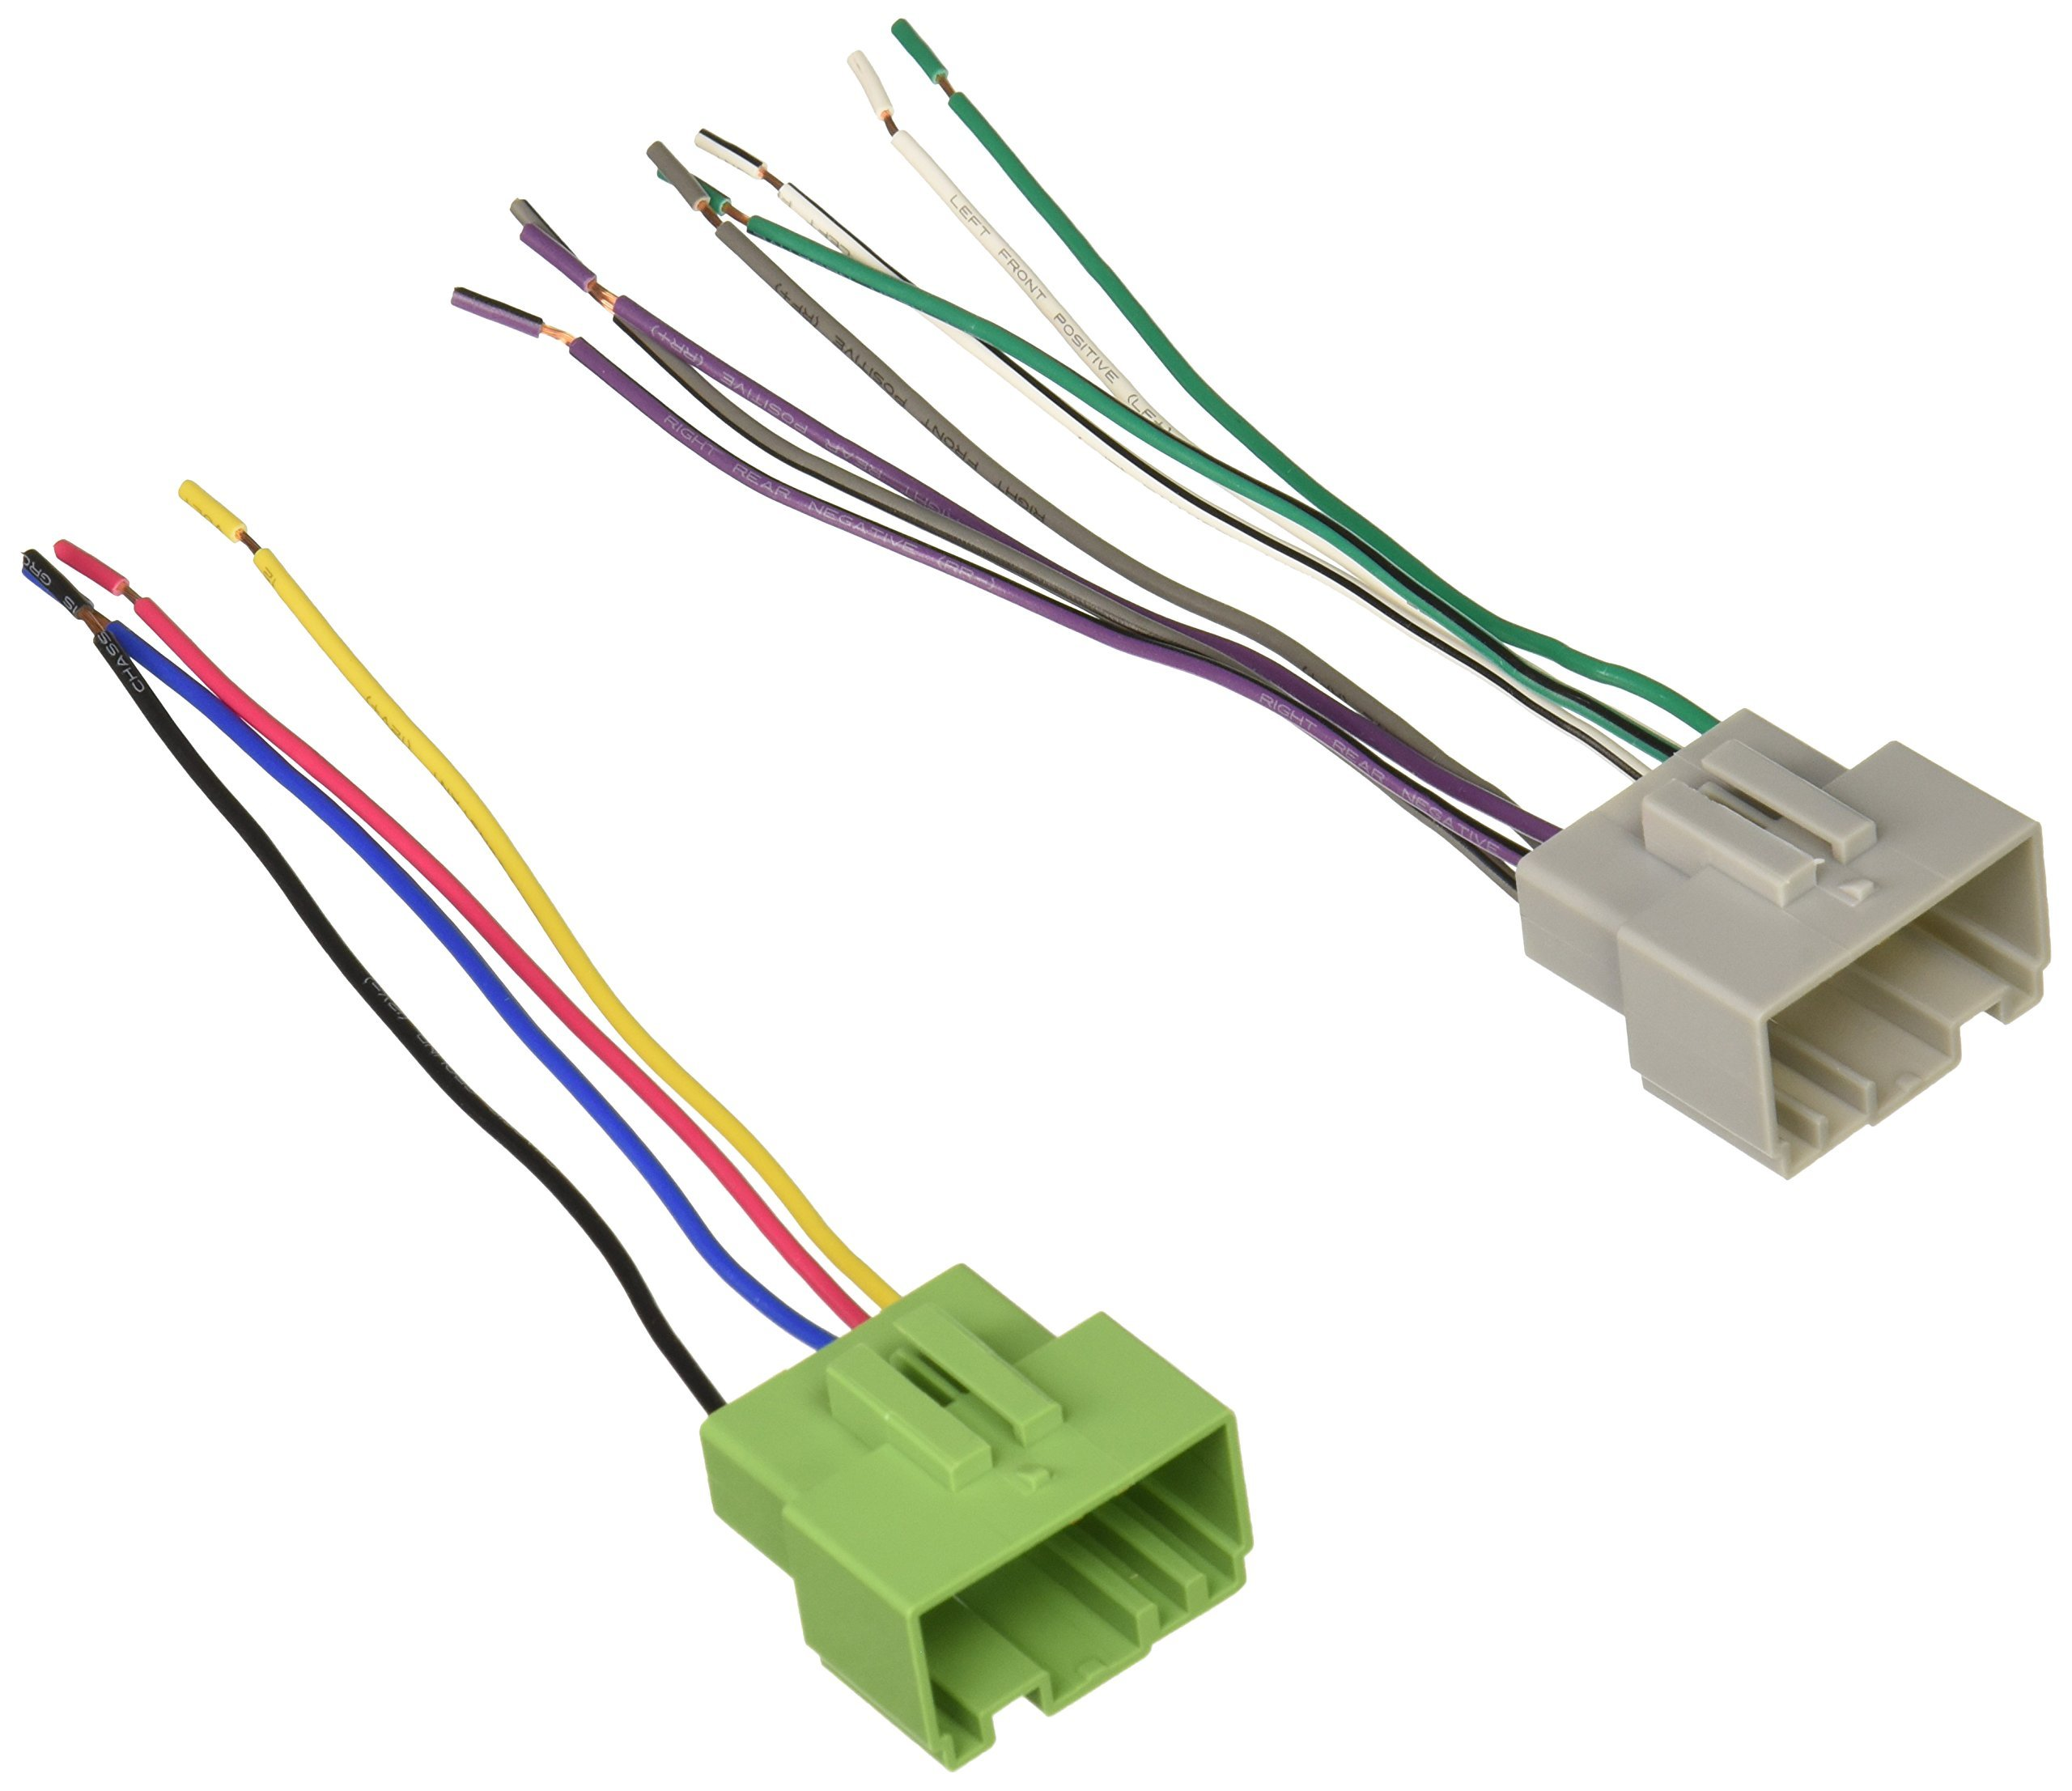 Cheap Scosche Radio Wiring Harness Find Wire Connectors Get Quotations For 2000 Volvo S80 Speaker Connector